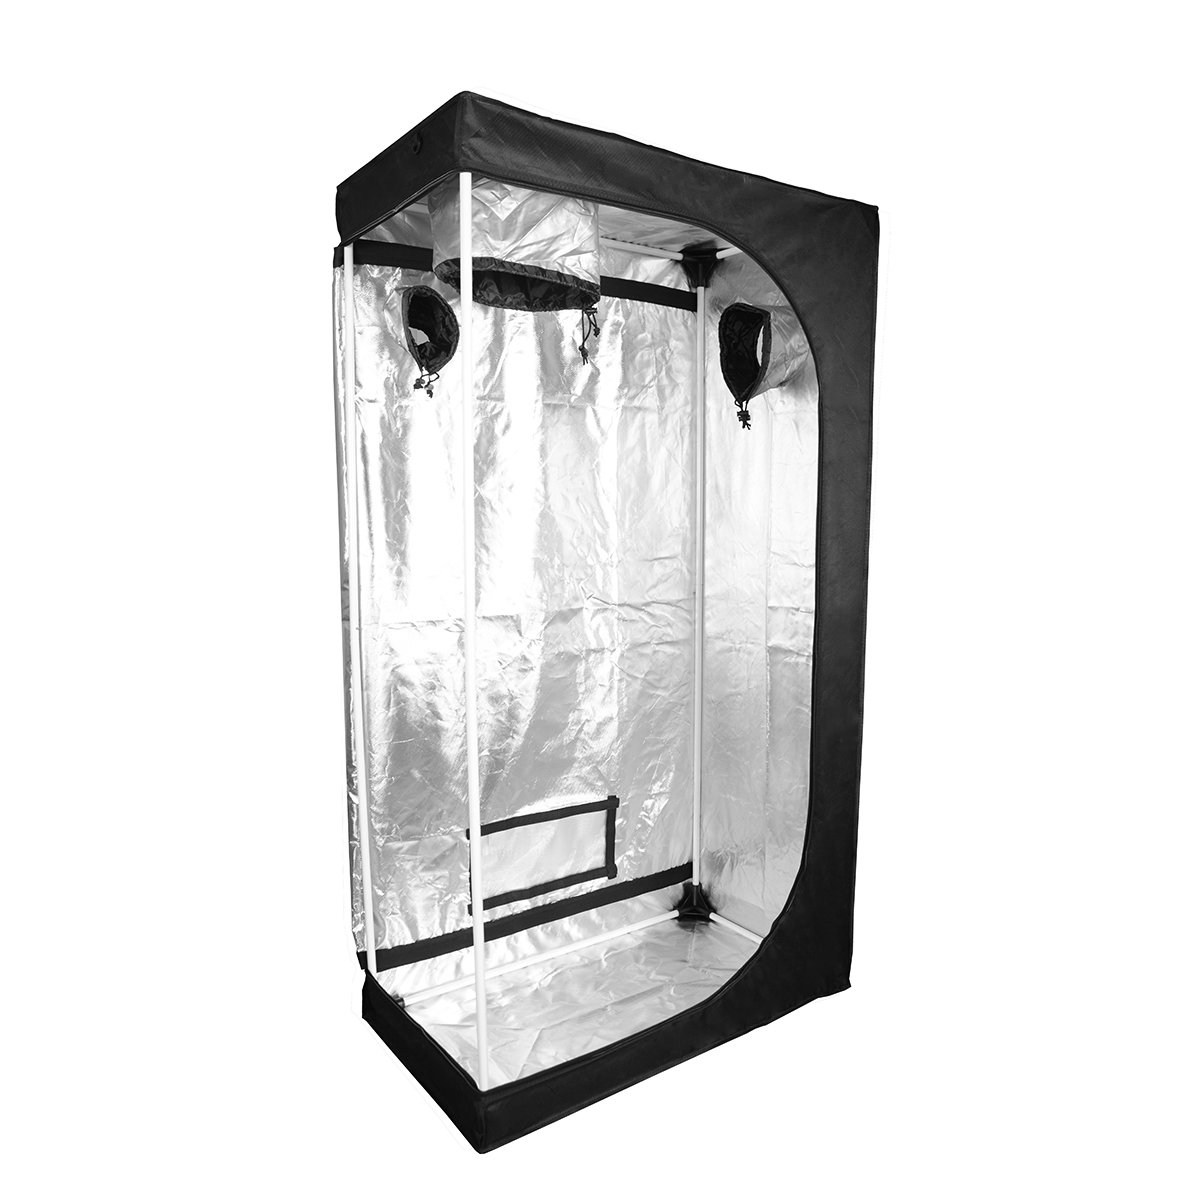 A1KINGDOM 48''x24''x60'' Refelctive Mylar Hydroponic Indoor Grow Tent with Removable Floor Tray,Observation Window and Upgraded Connectors for Indoor Plant Growing